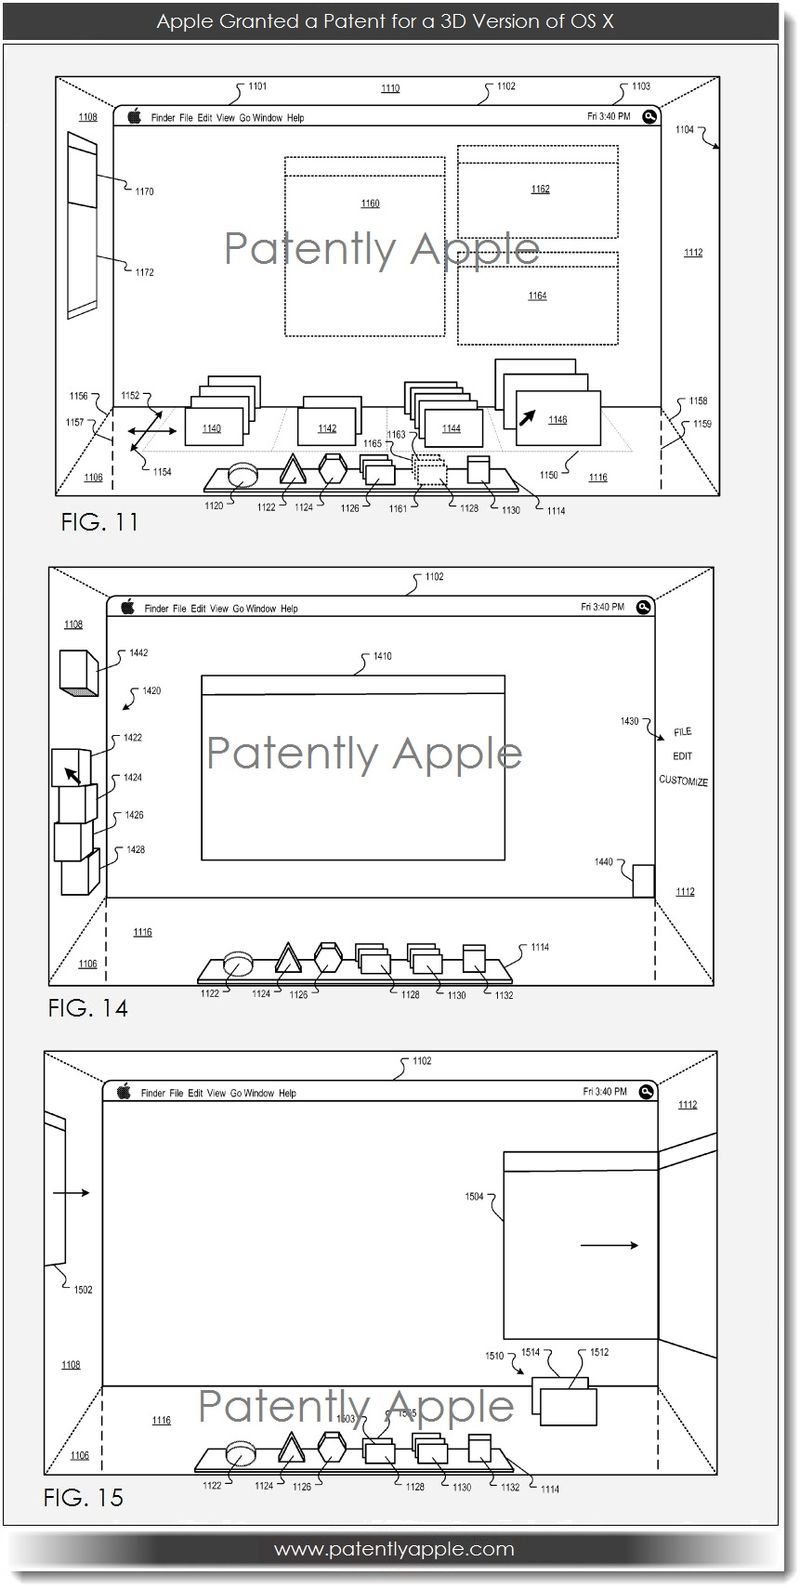 2A Apple granted a patent for a 3D version of OS X